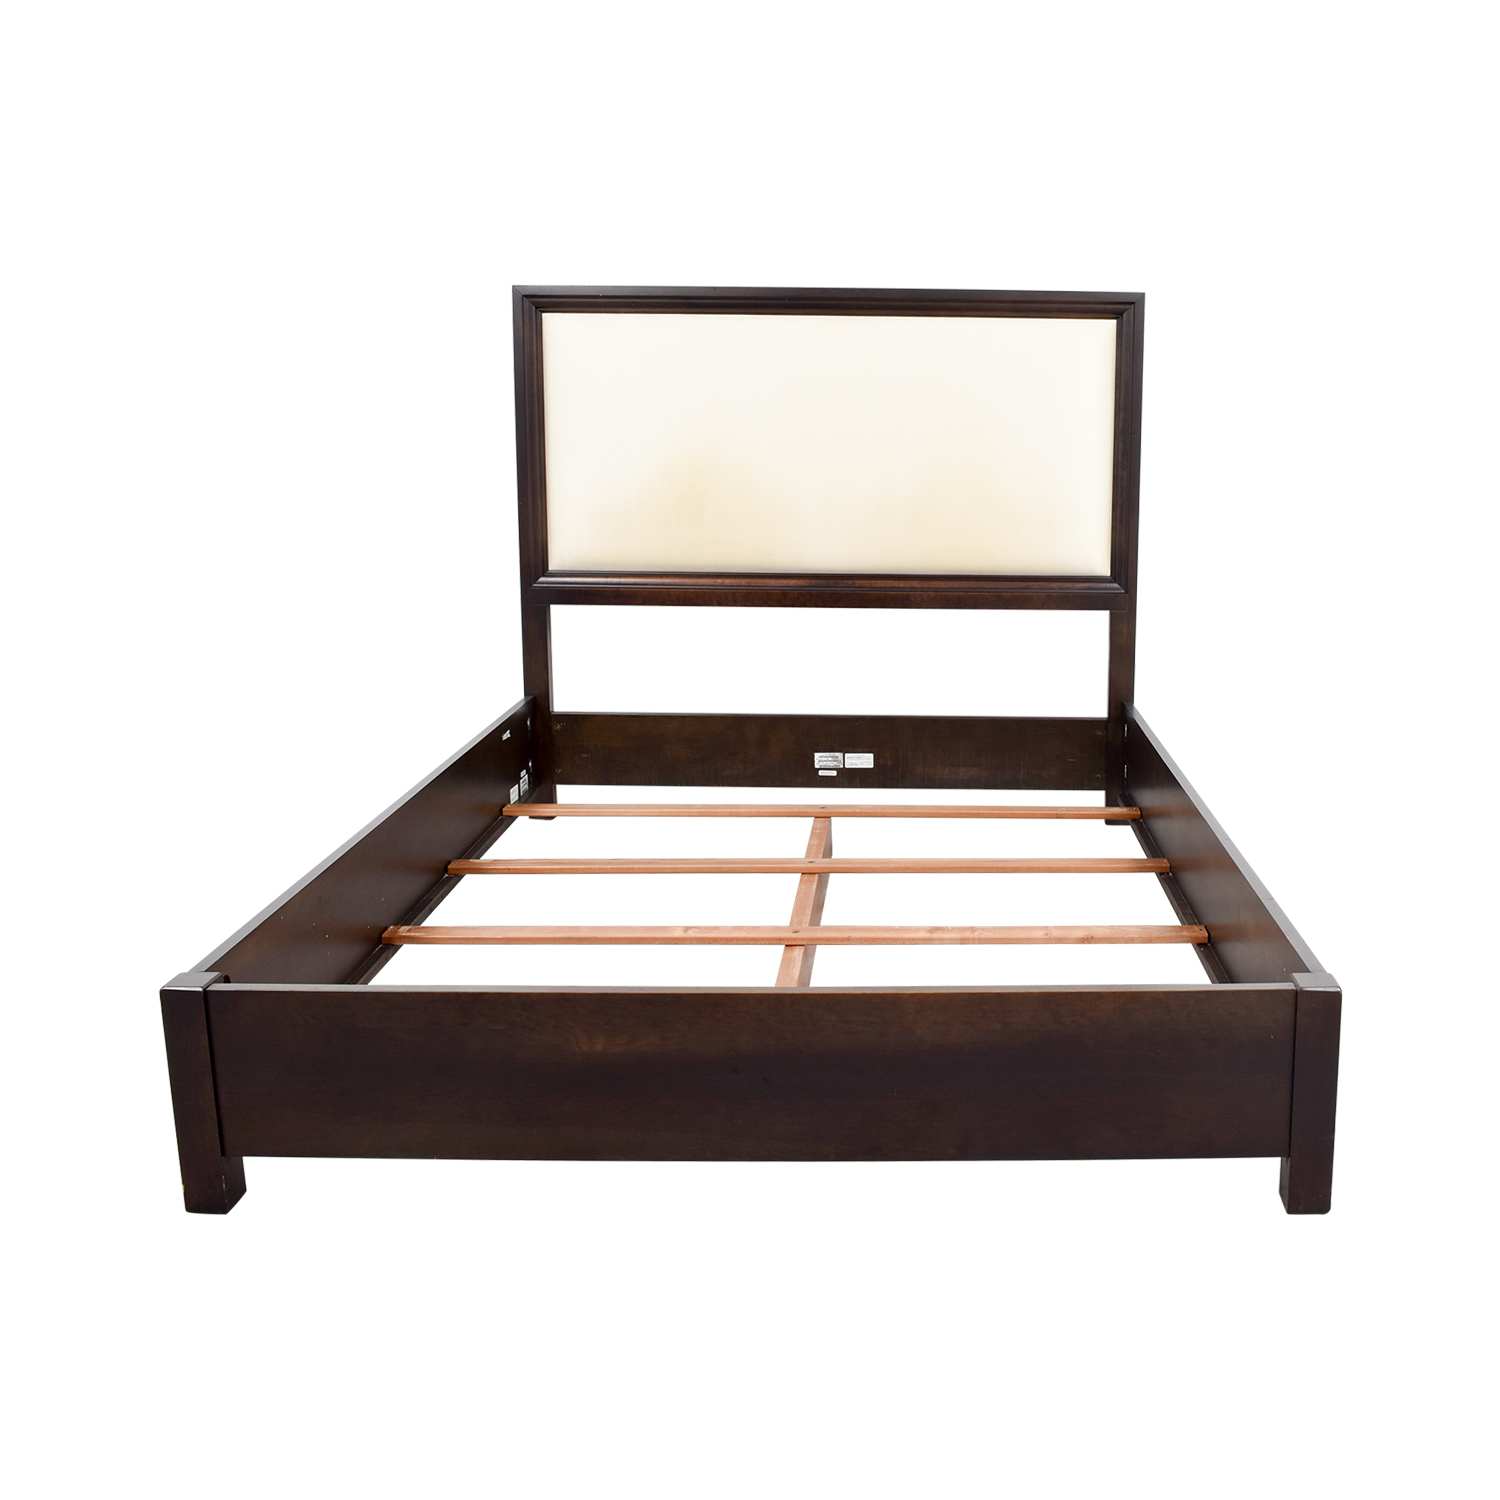 Ethan Allen Ethan Allen Wood and Cream Upholstered Queen Bed Frame discount